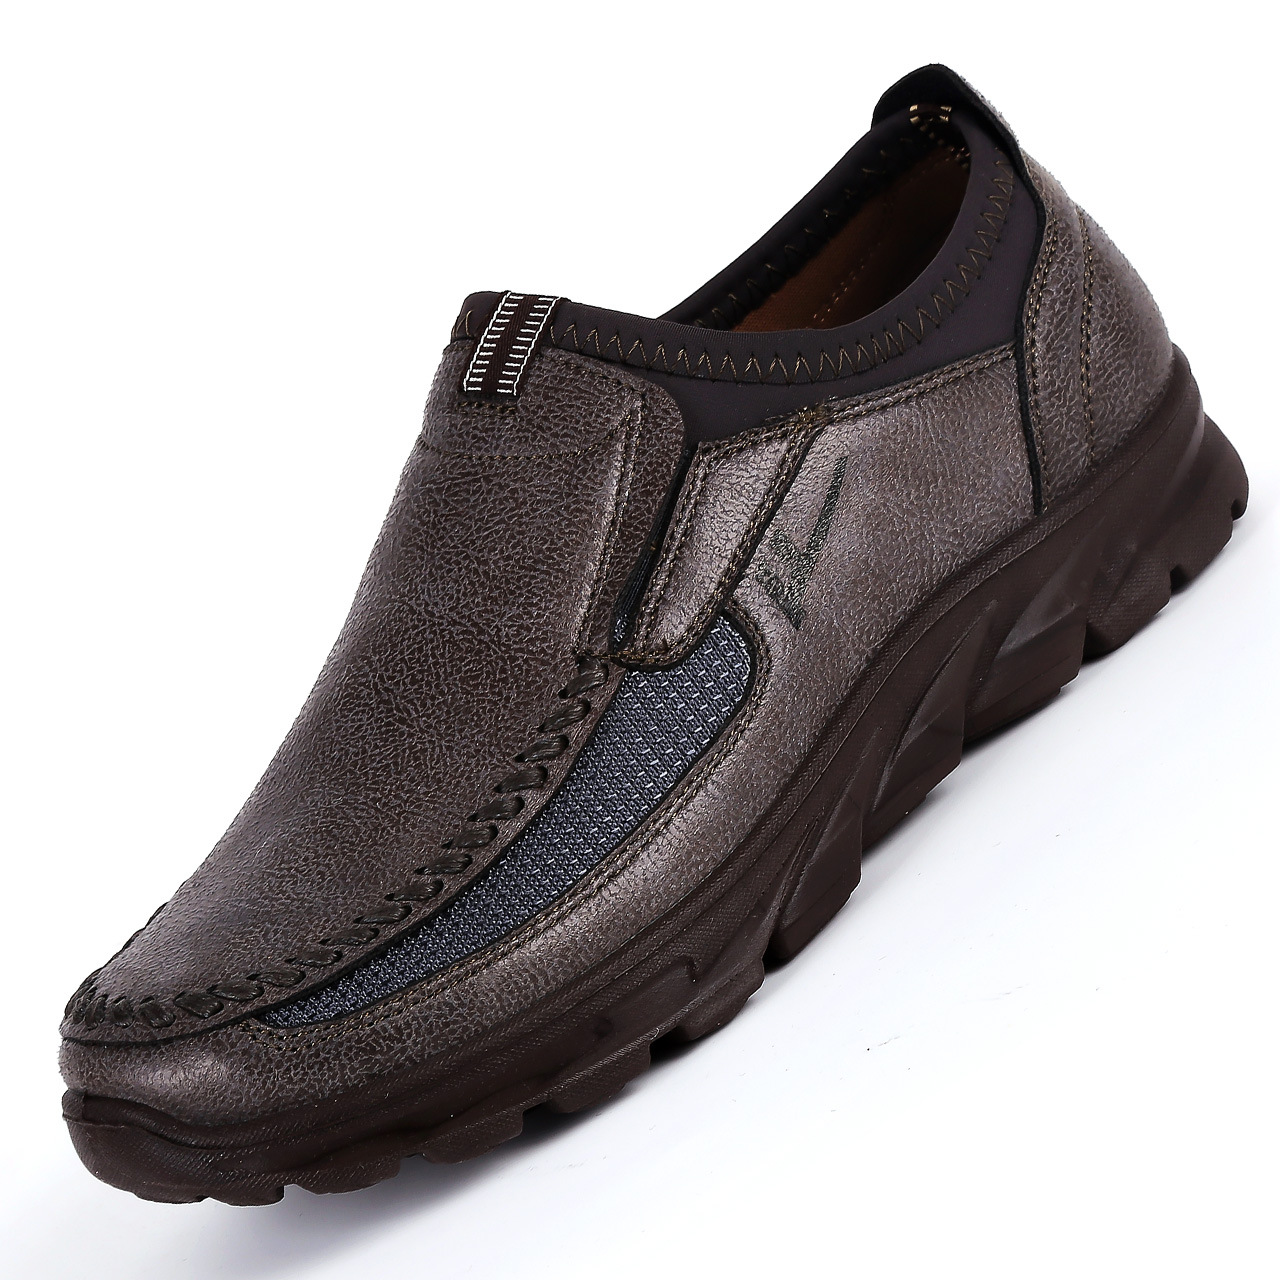 Men-039-s-Casual-Leather-Slip-On-Driving-Loafers-Antiskid-Moccasins-Breathable thumbnail 9